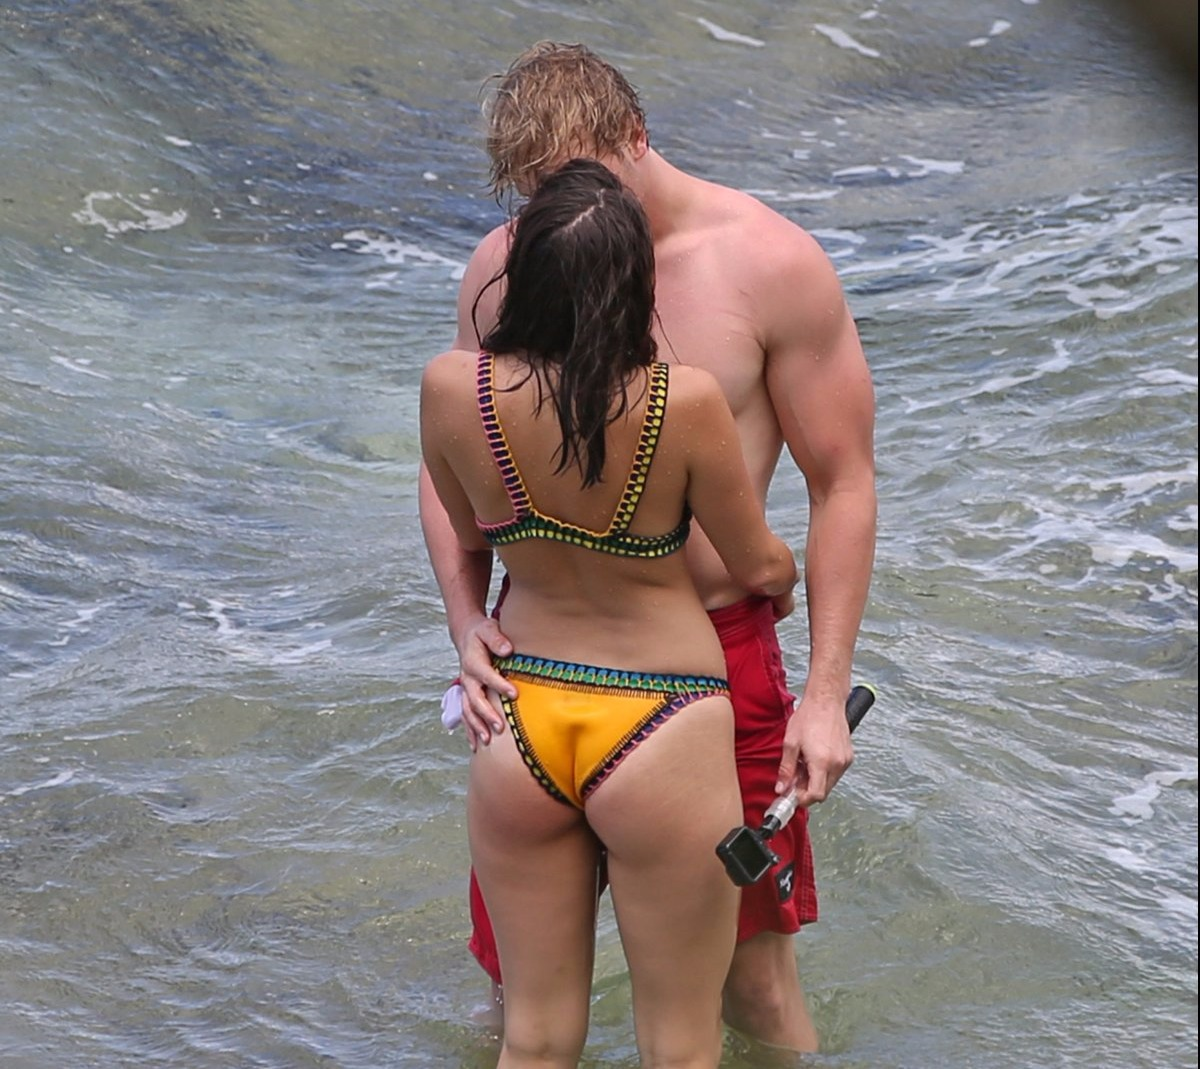 Logan Paul, a famous social media personality was spotted kissing Chloe Bennet, an actress in the beach of Hawaii